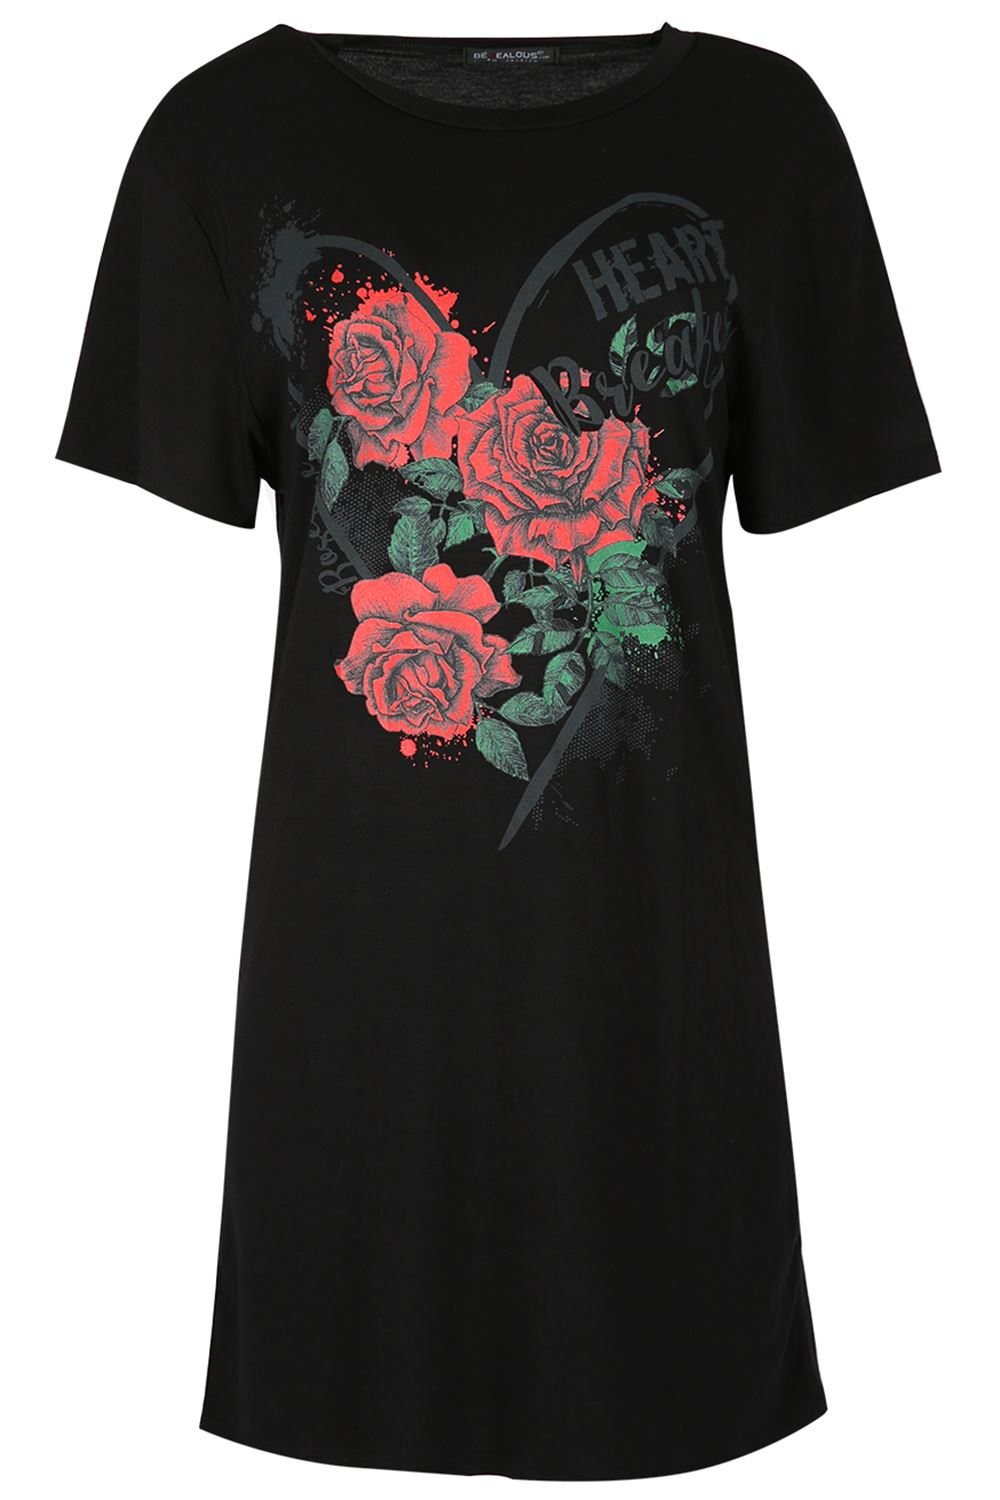 Womens ladies floral roses embroidery oversized baggy